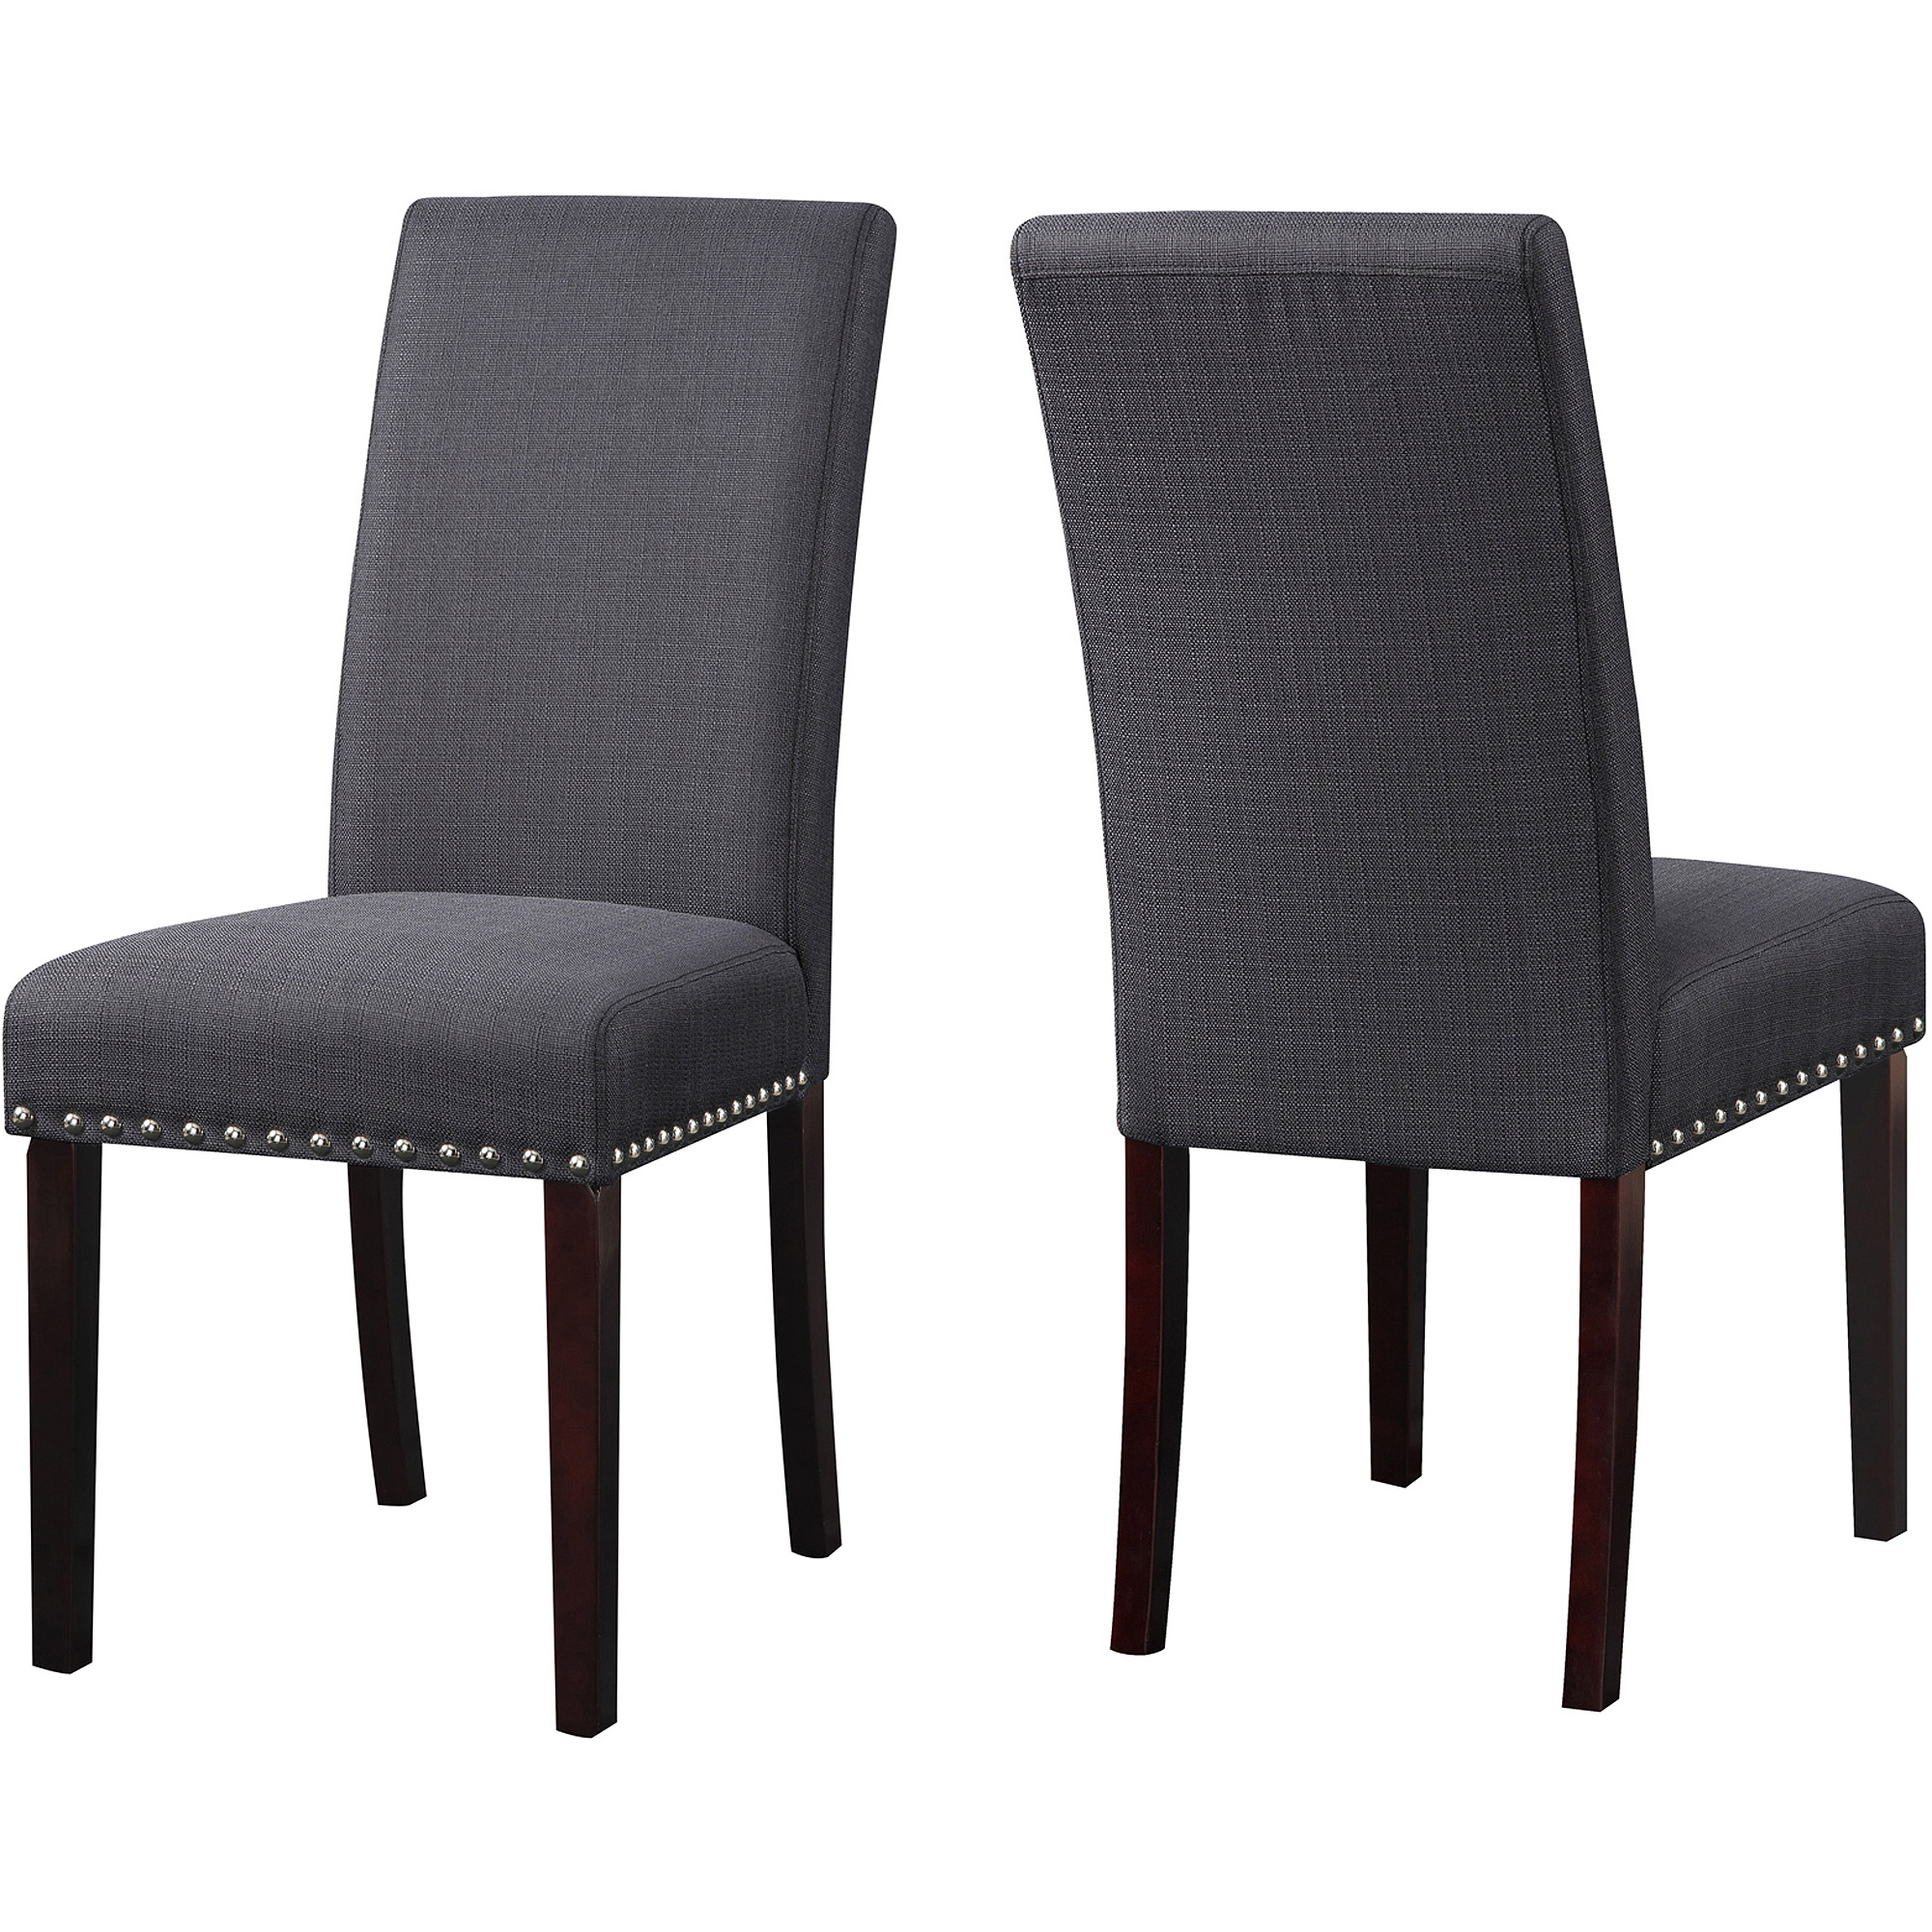 DHI Nice Nail Head Upholstered Dining Chair 2 Pack Multiple Colors - Walmart.com  sc 1 st  Walmart & DHI Nice Nail Head Upholstered Dining Chair 2 Pack Multiple Colors ...